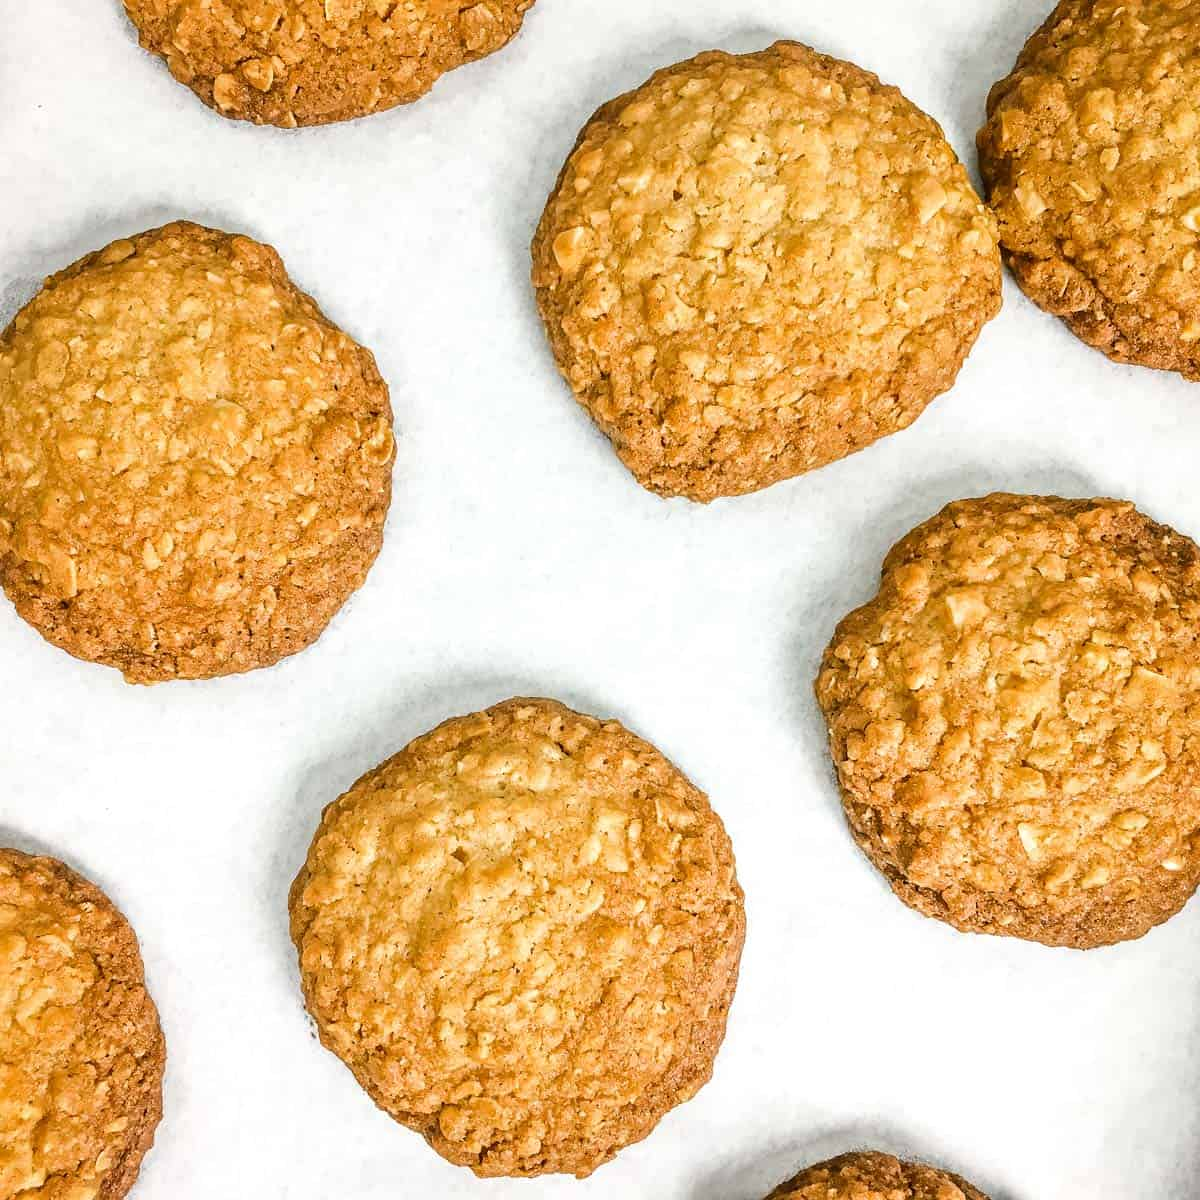 Baked cookies on a white parchment paper